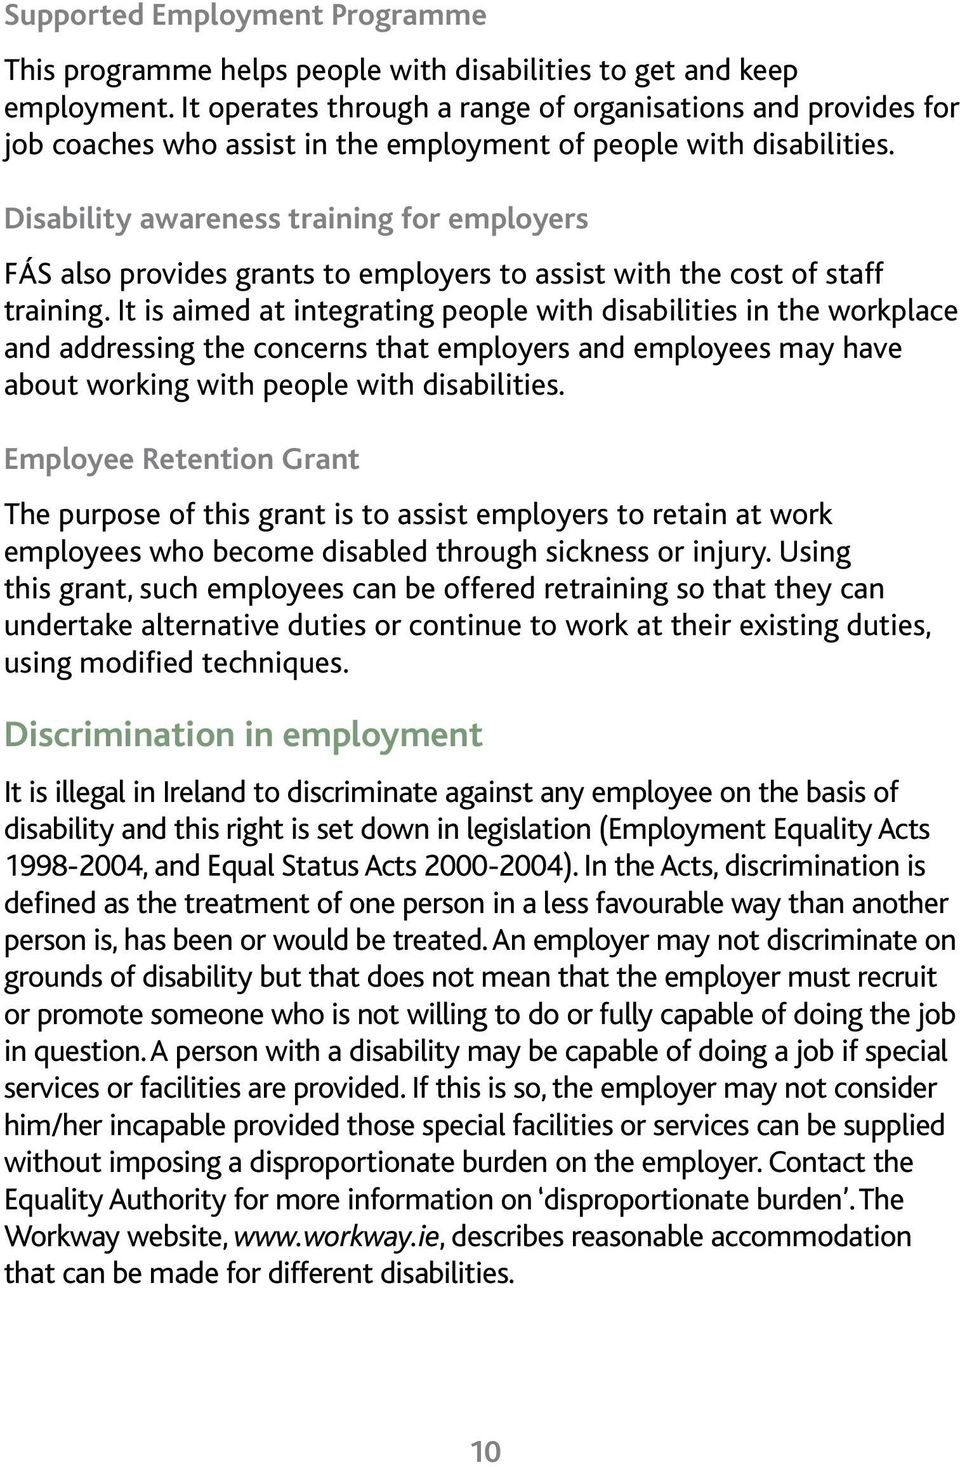 Disability awareness training for employers FÁS also provides grants to employers to assist with the cost of staff training.